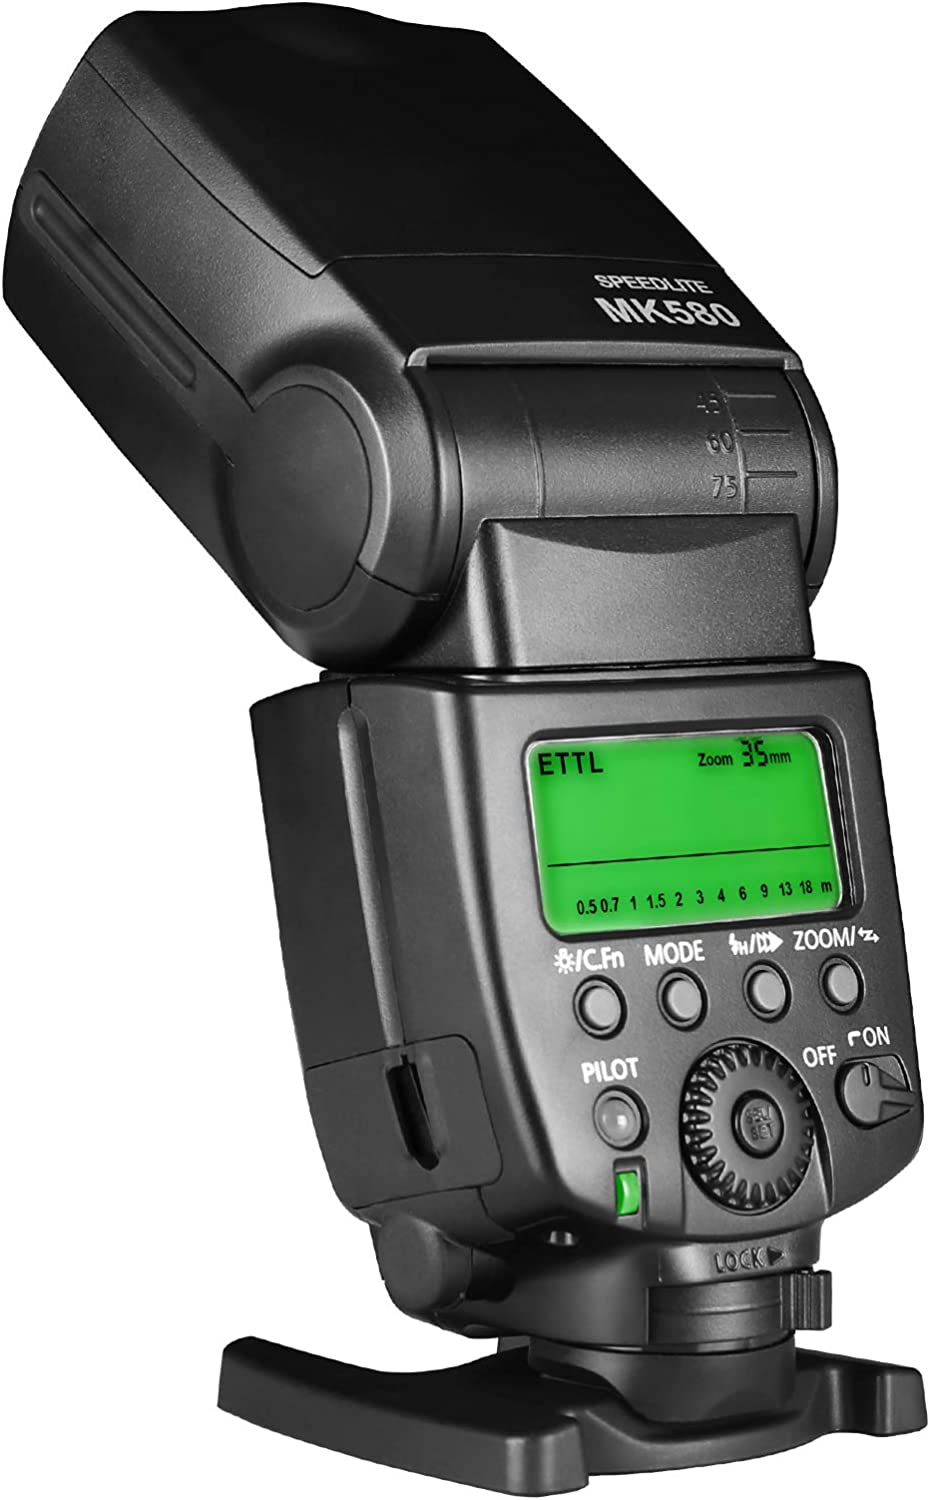 Meike MK-580 TTL Camera Speedlite Flash Compatible with Canon EOS Cameras 5D III 6D 60D 450D 500D 550D 600D 650D 700D T6 T3i and Other Canon EOS Cameras with Standard hot Shoe Adison Tek